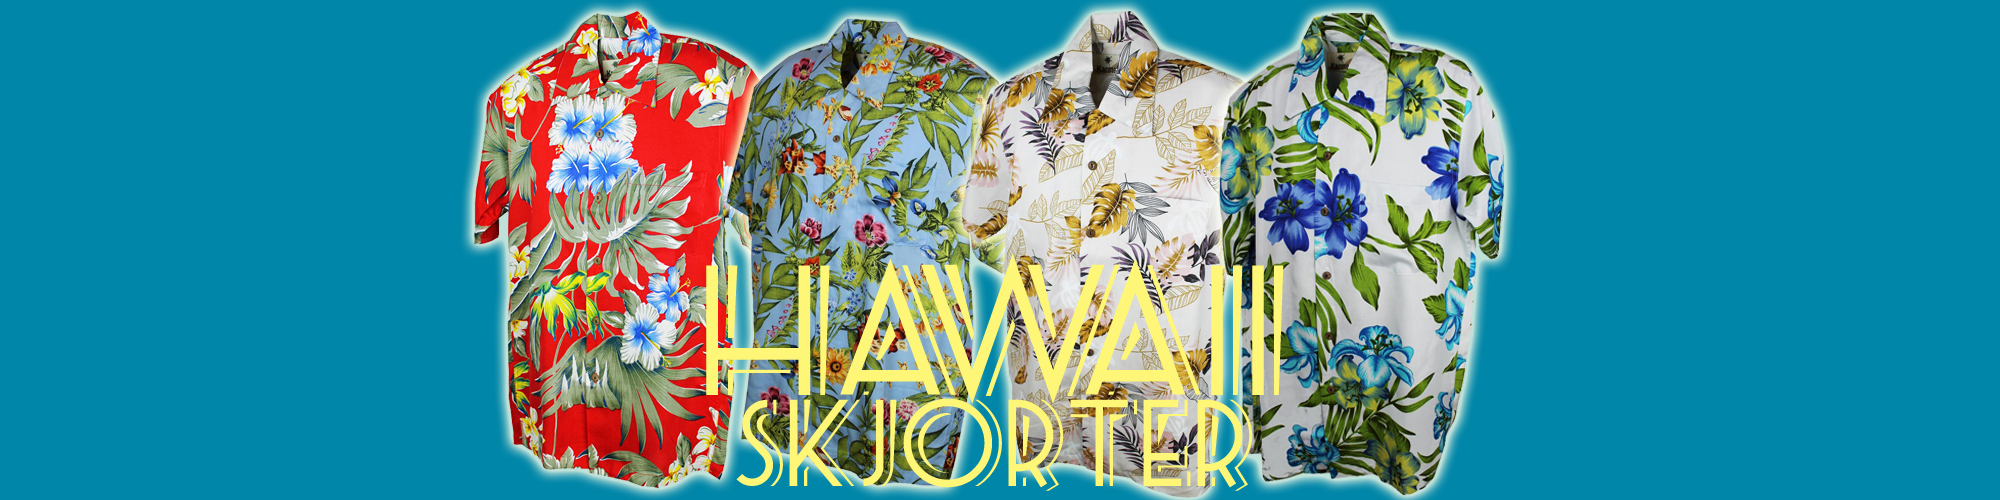 hawaiiskjorter18_slider